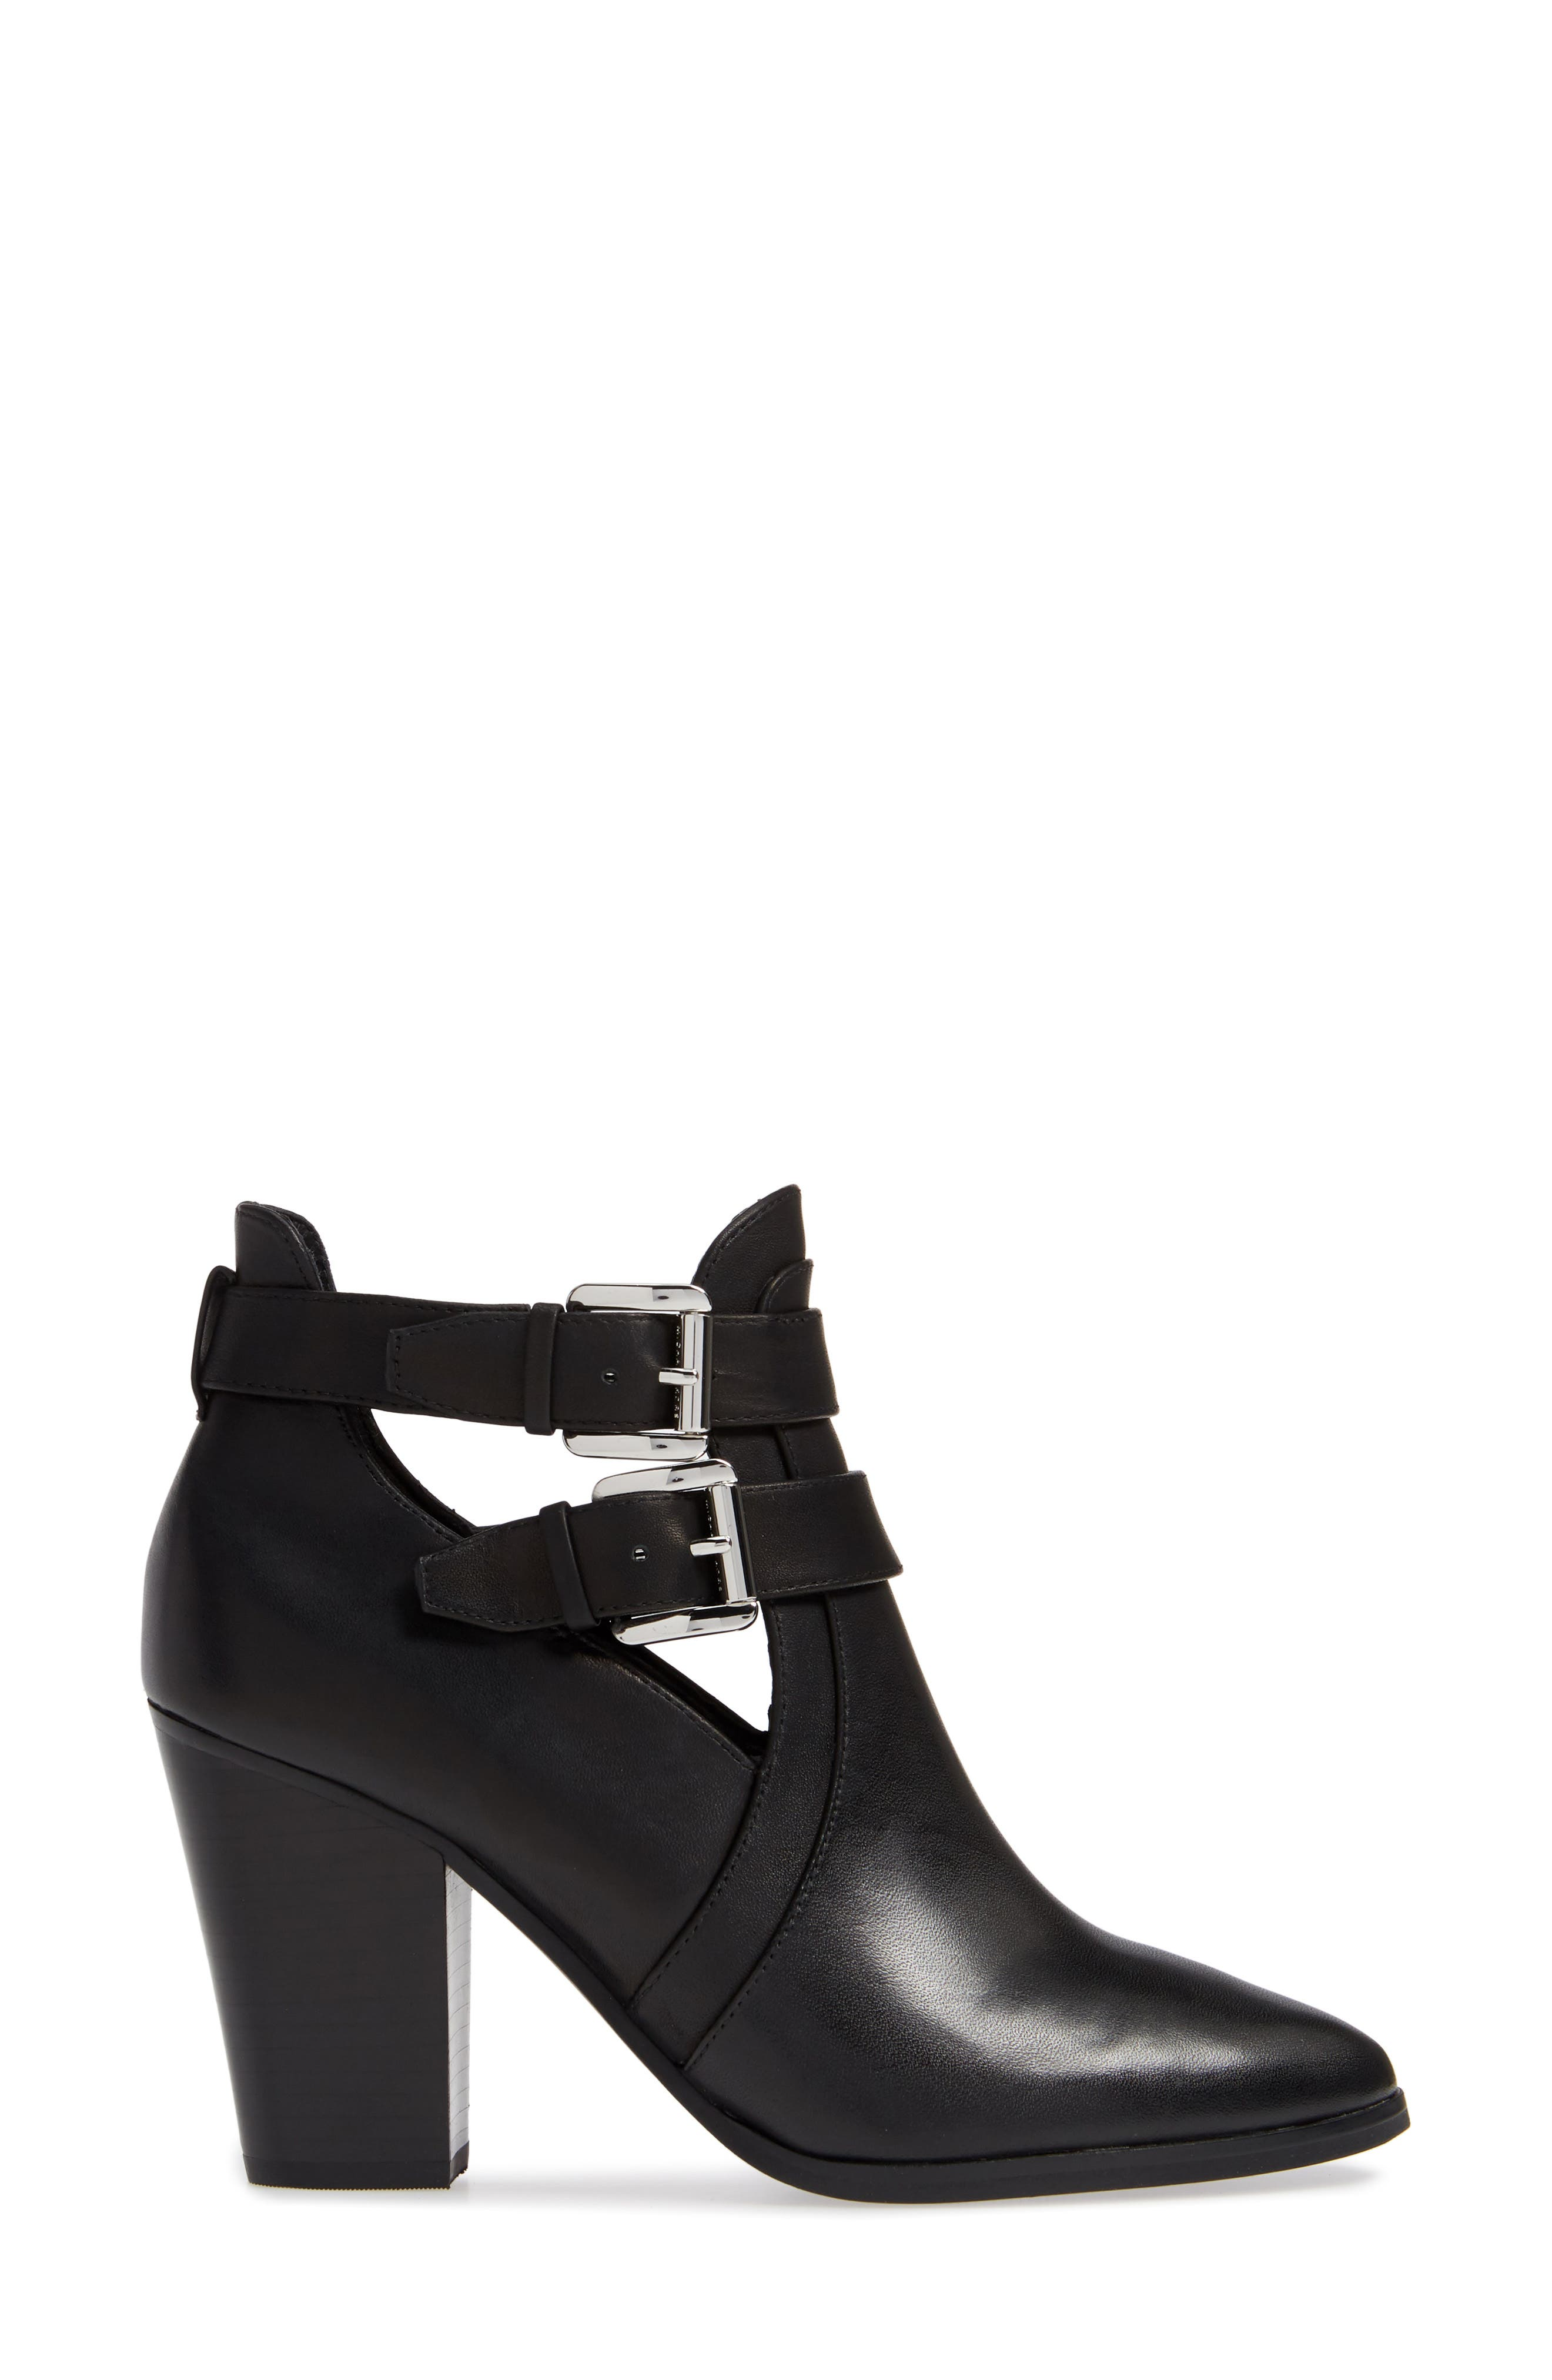 Walden Bootie,                             Alternate thumbnail 3, color,                             BLACK VACHETTA LEATHER